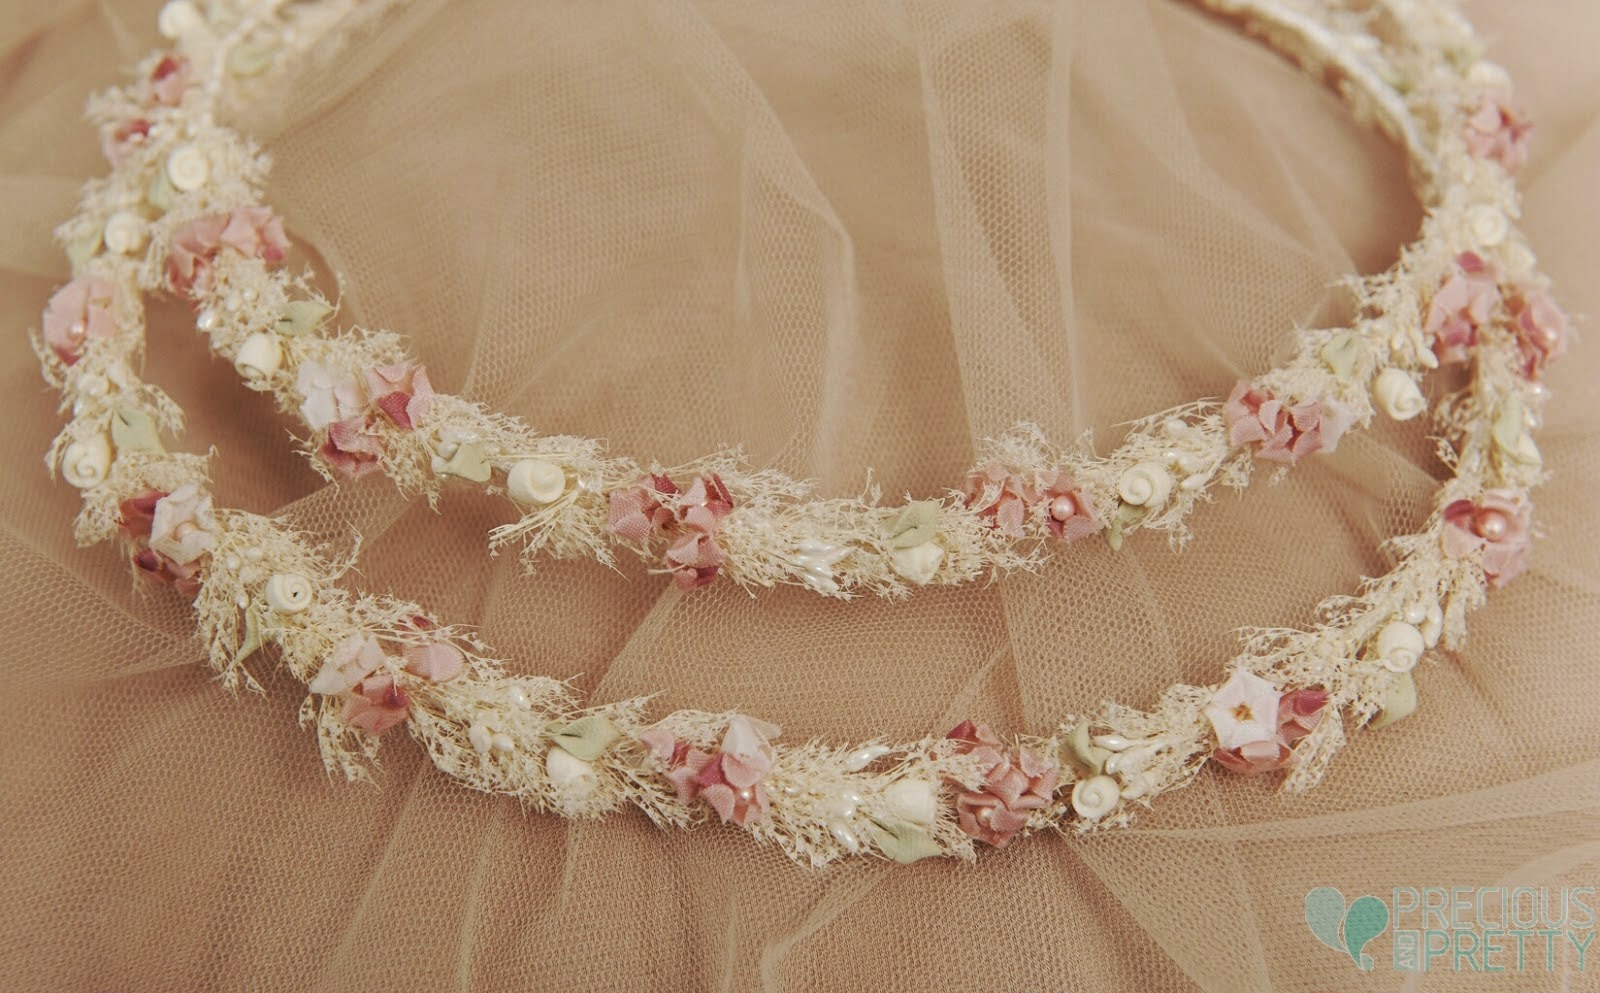 Wedding crowns with dried baby's breath flowers